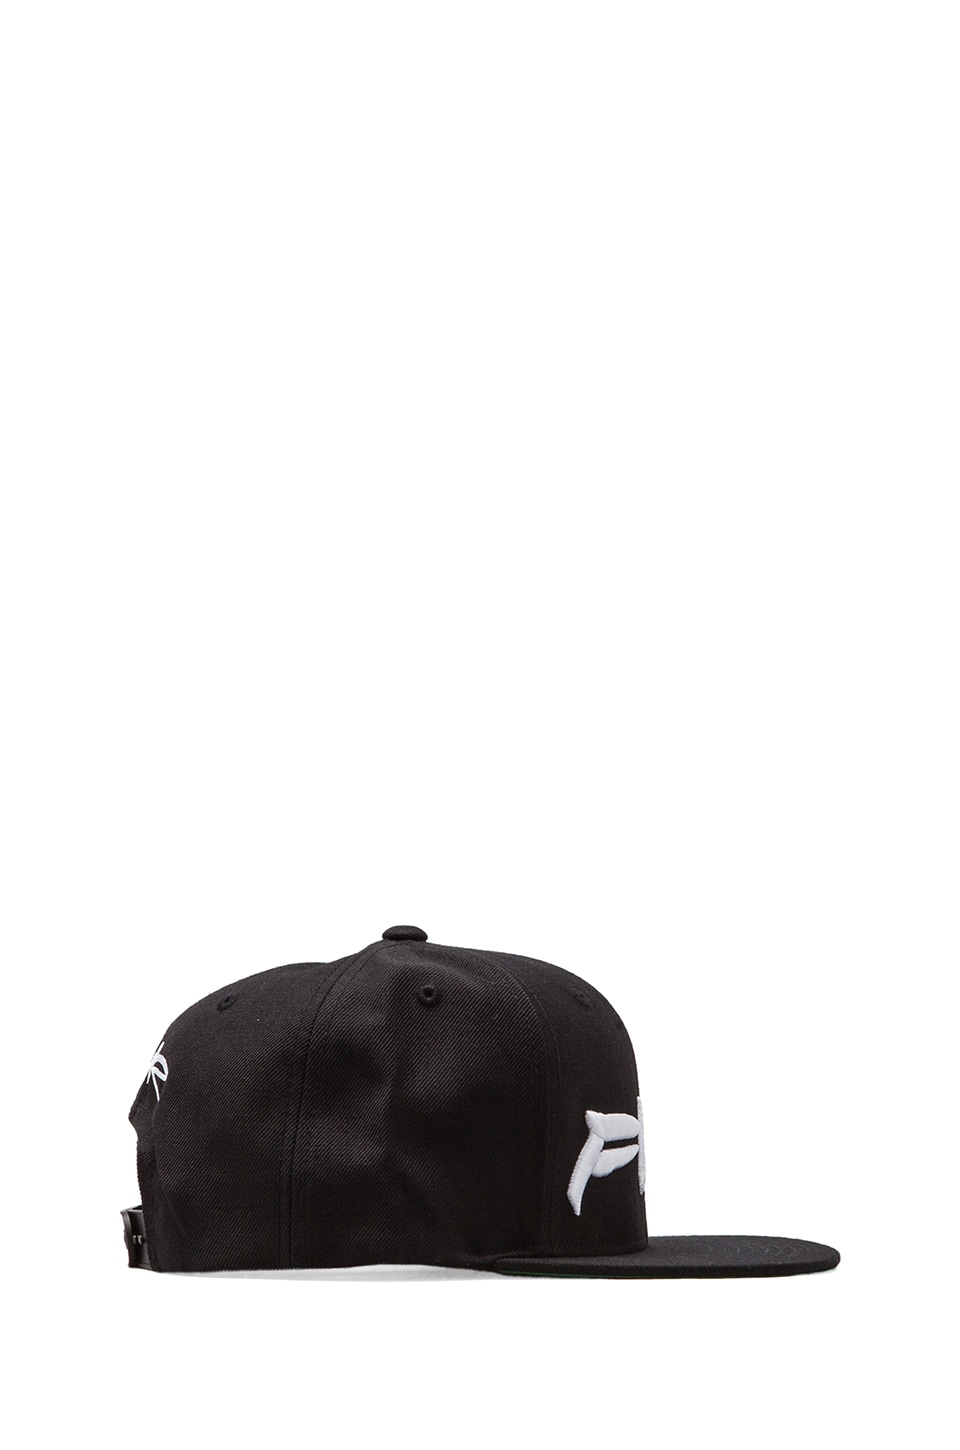 SSUR Futura Fuck Snapback in Black/White